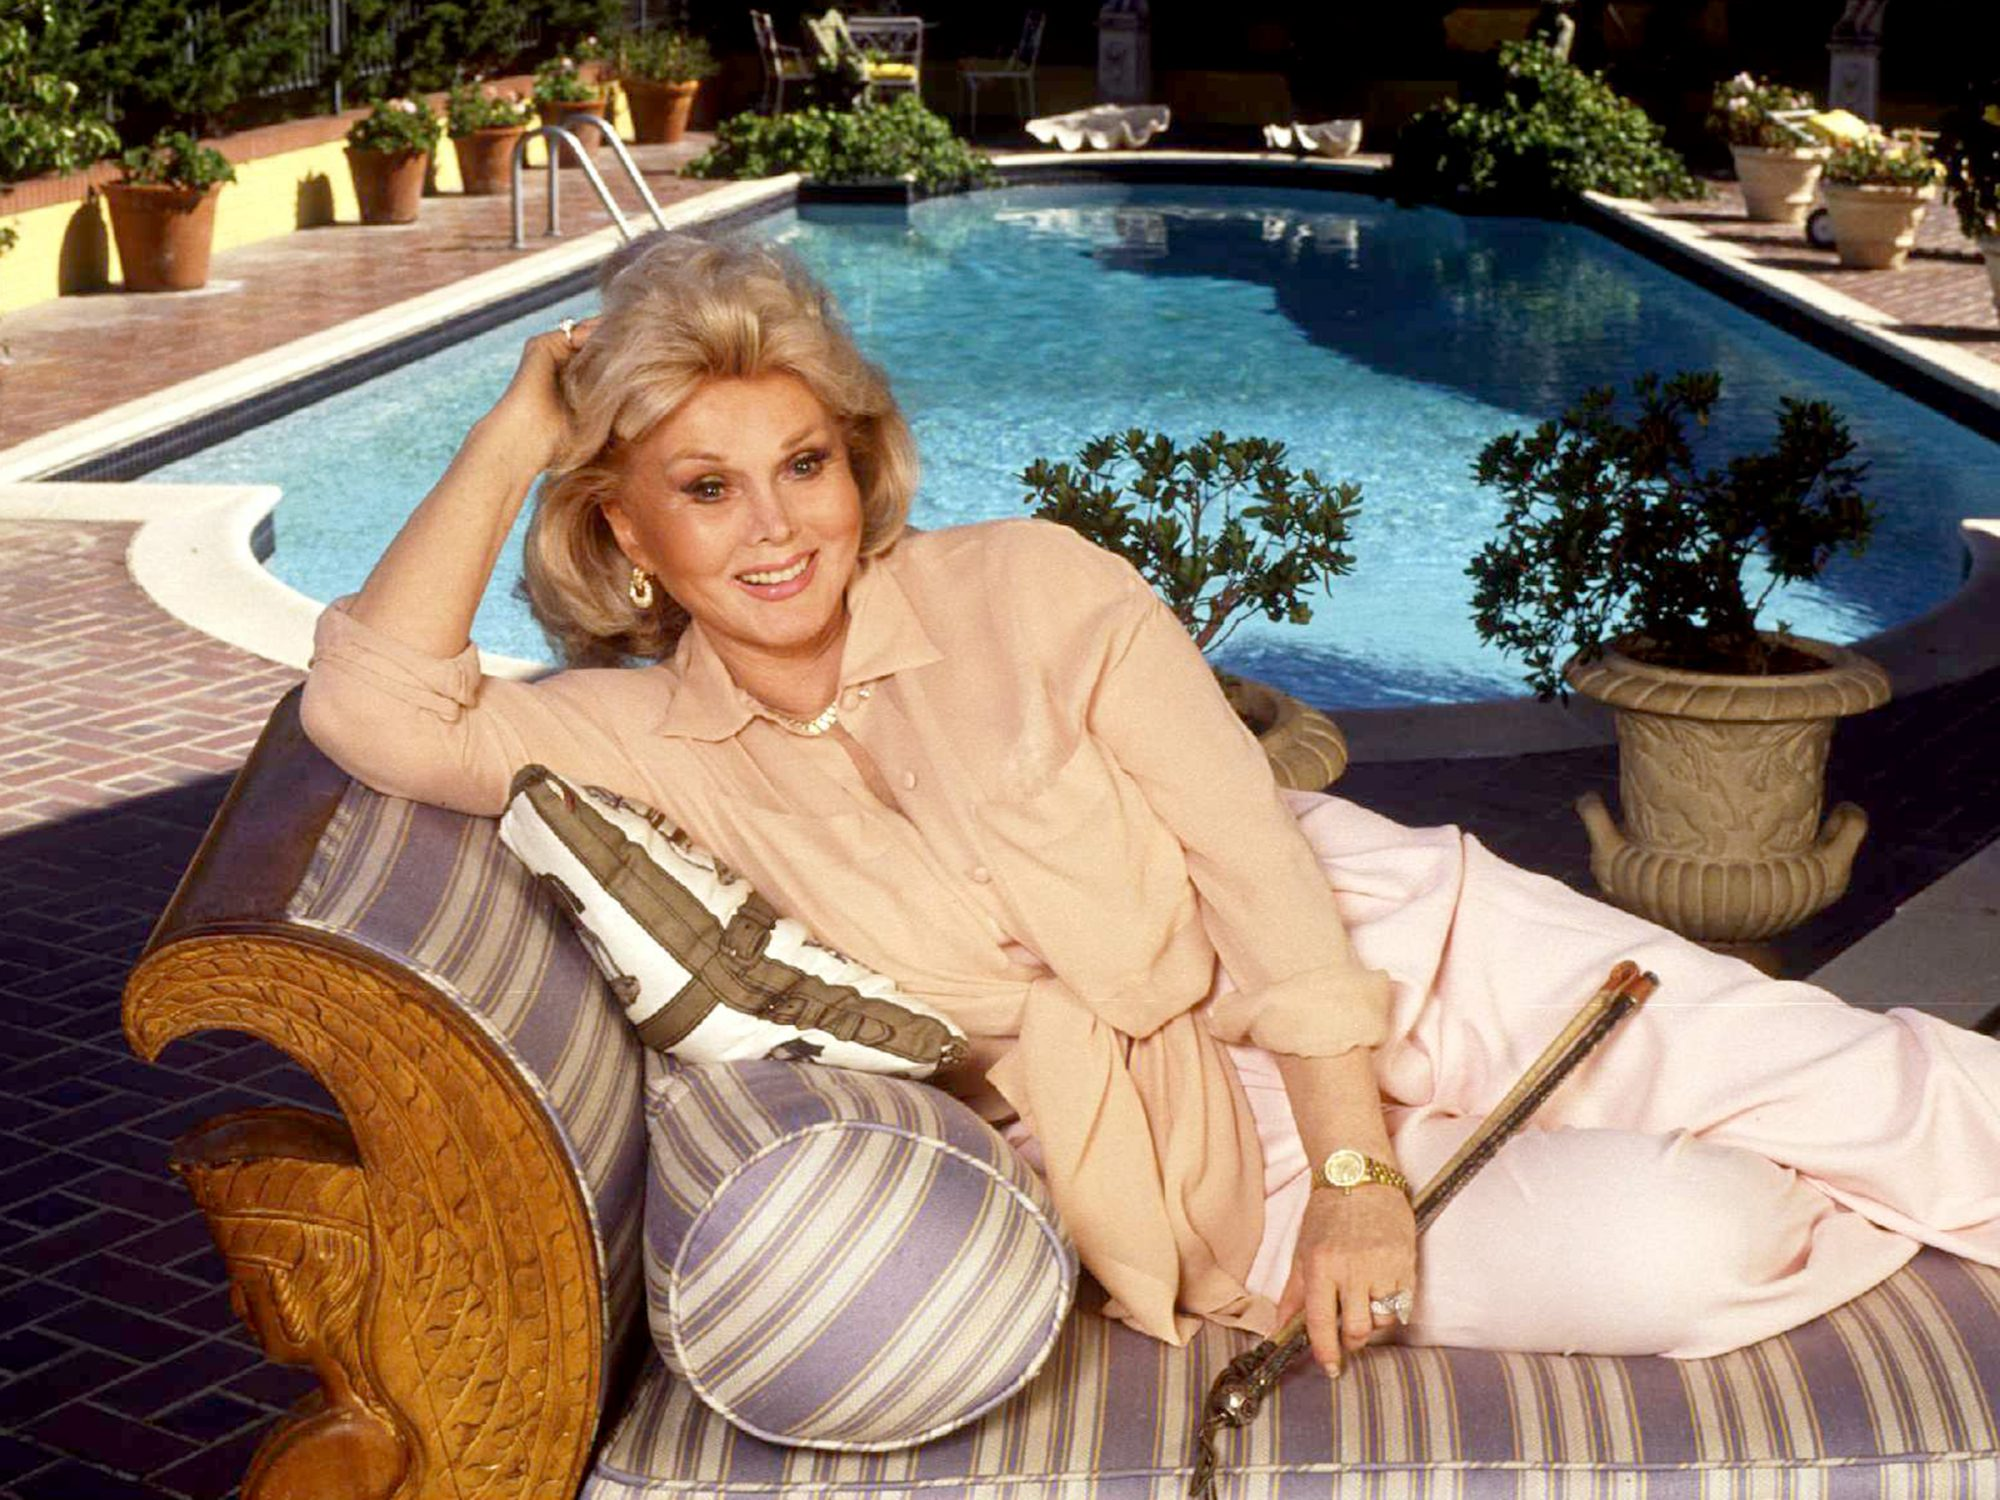 Bel Air Zsa Zsa Gabor Poolside In Her Bel Air Mansion Paul Harris